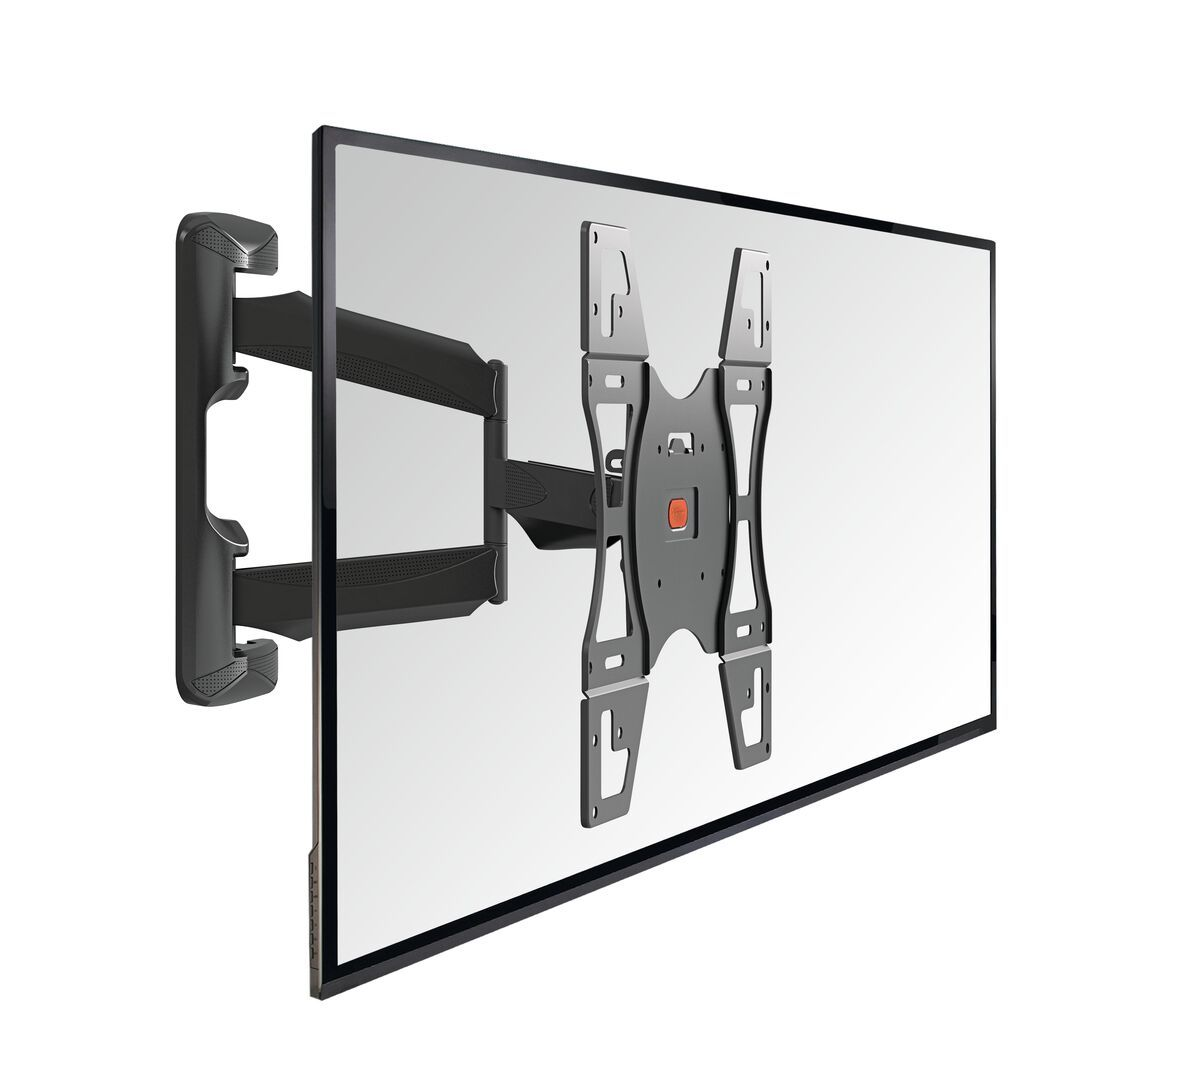 Vogel's BASE 45 M Full-Motion TV Wall Mount - Suitable for 32 up to 55 inch TVs - Full motion (up to 180°) - Tilt up to 15° - Product